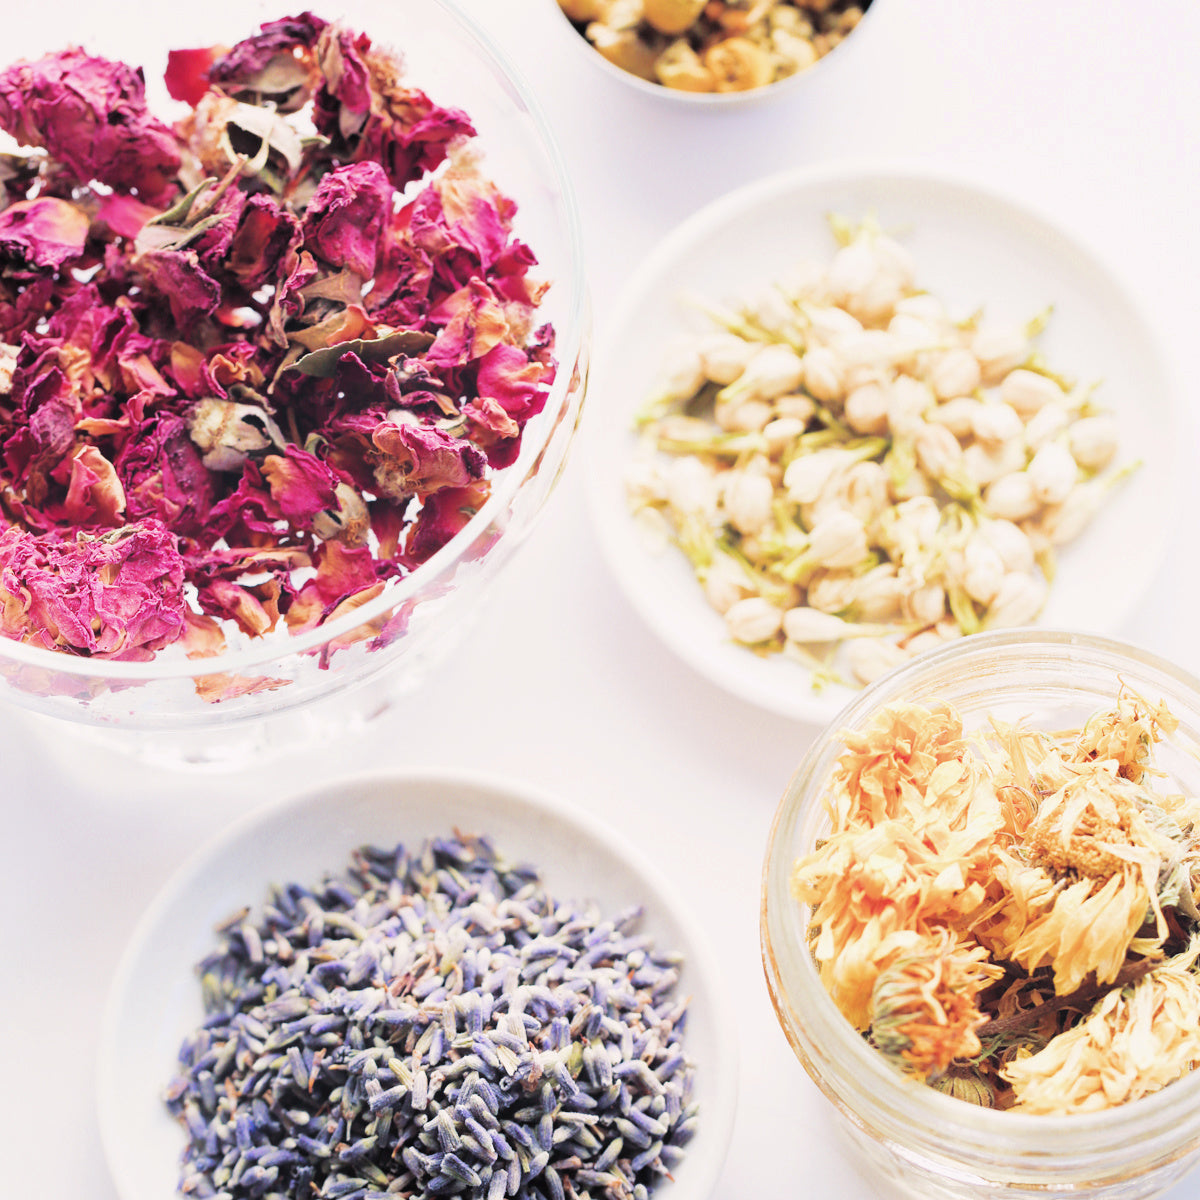 Herbs, Resins & Incense